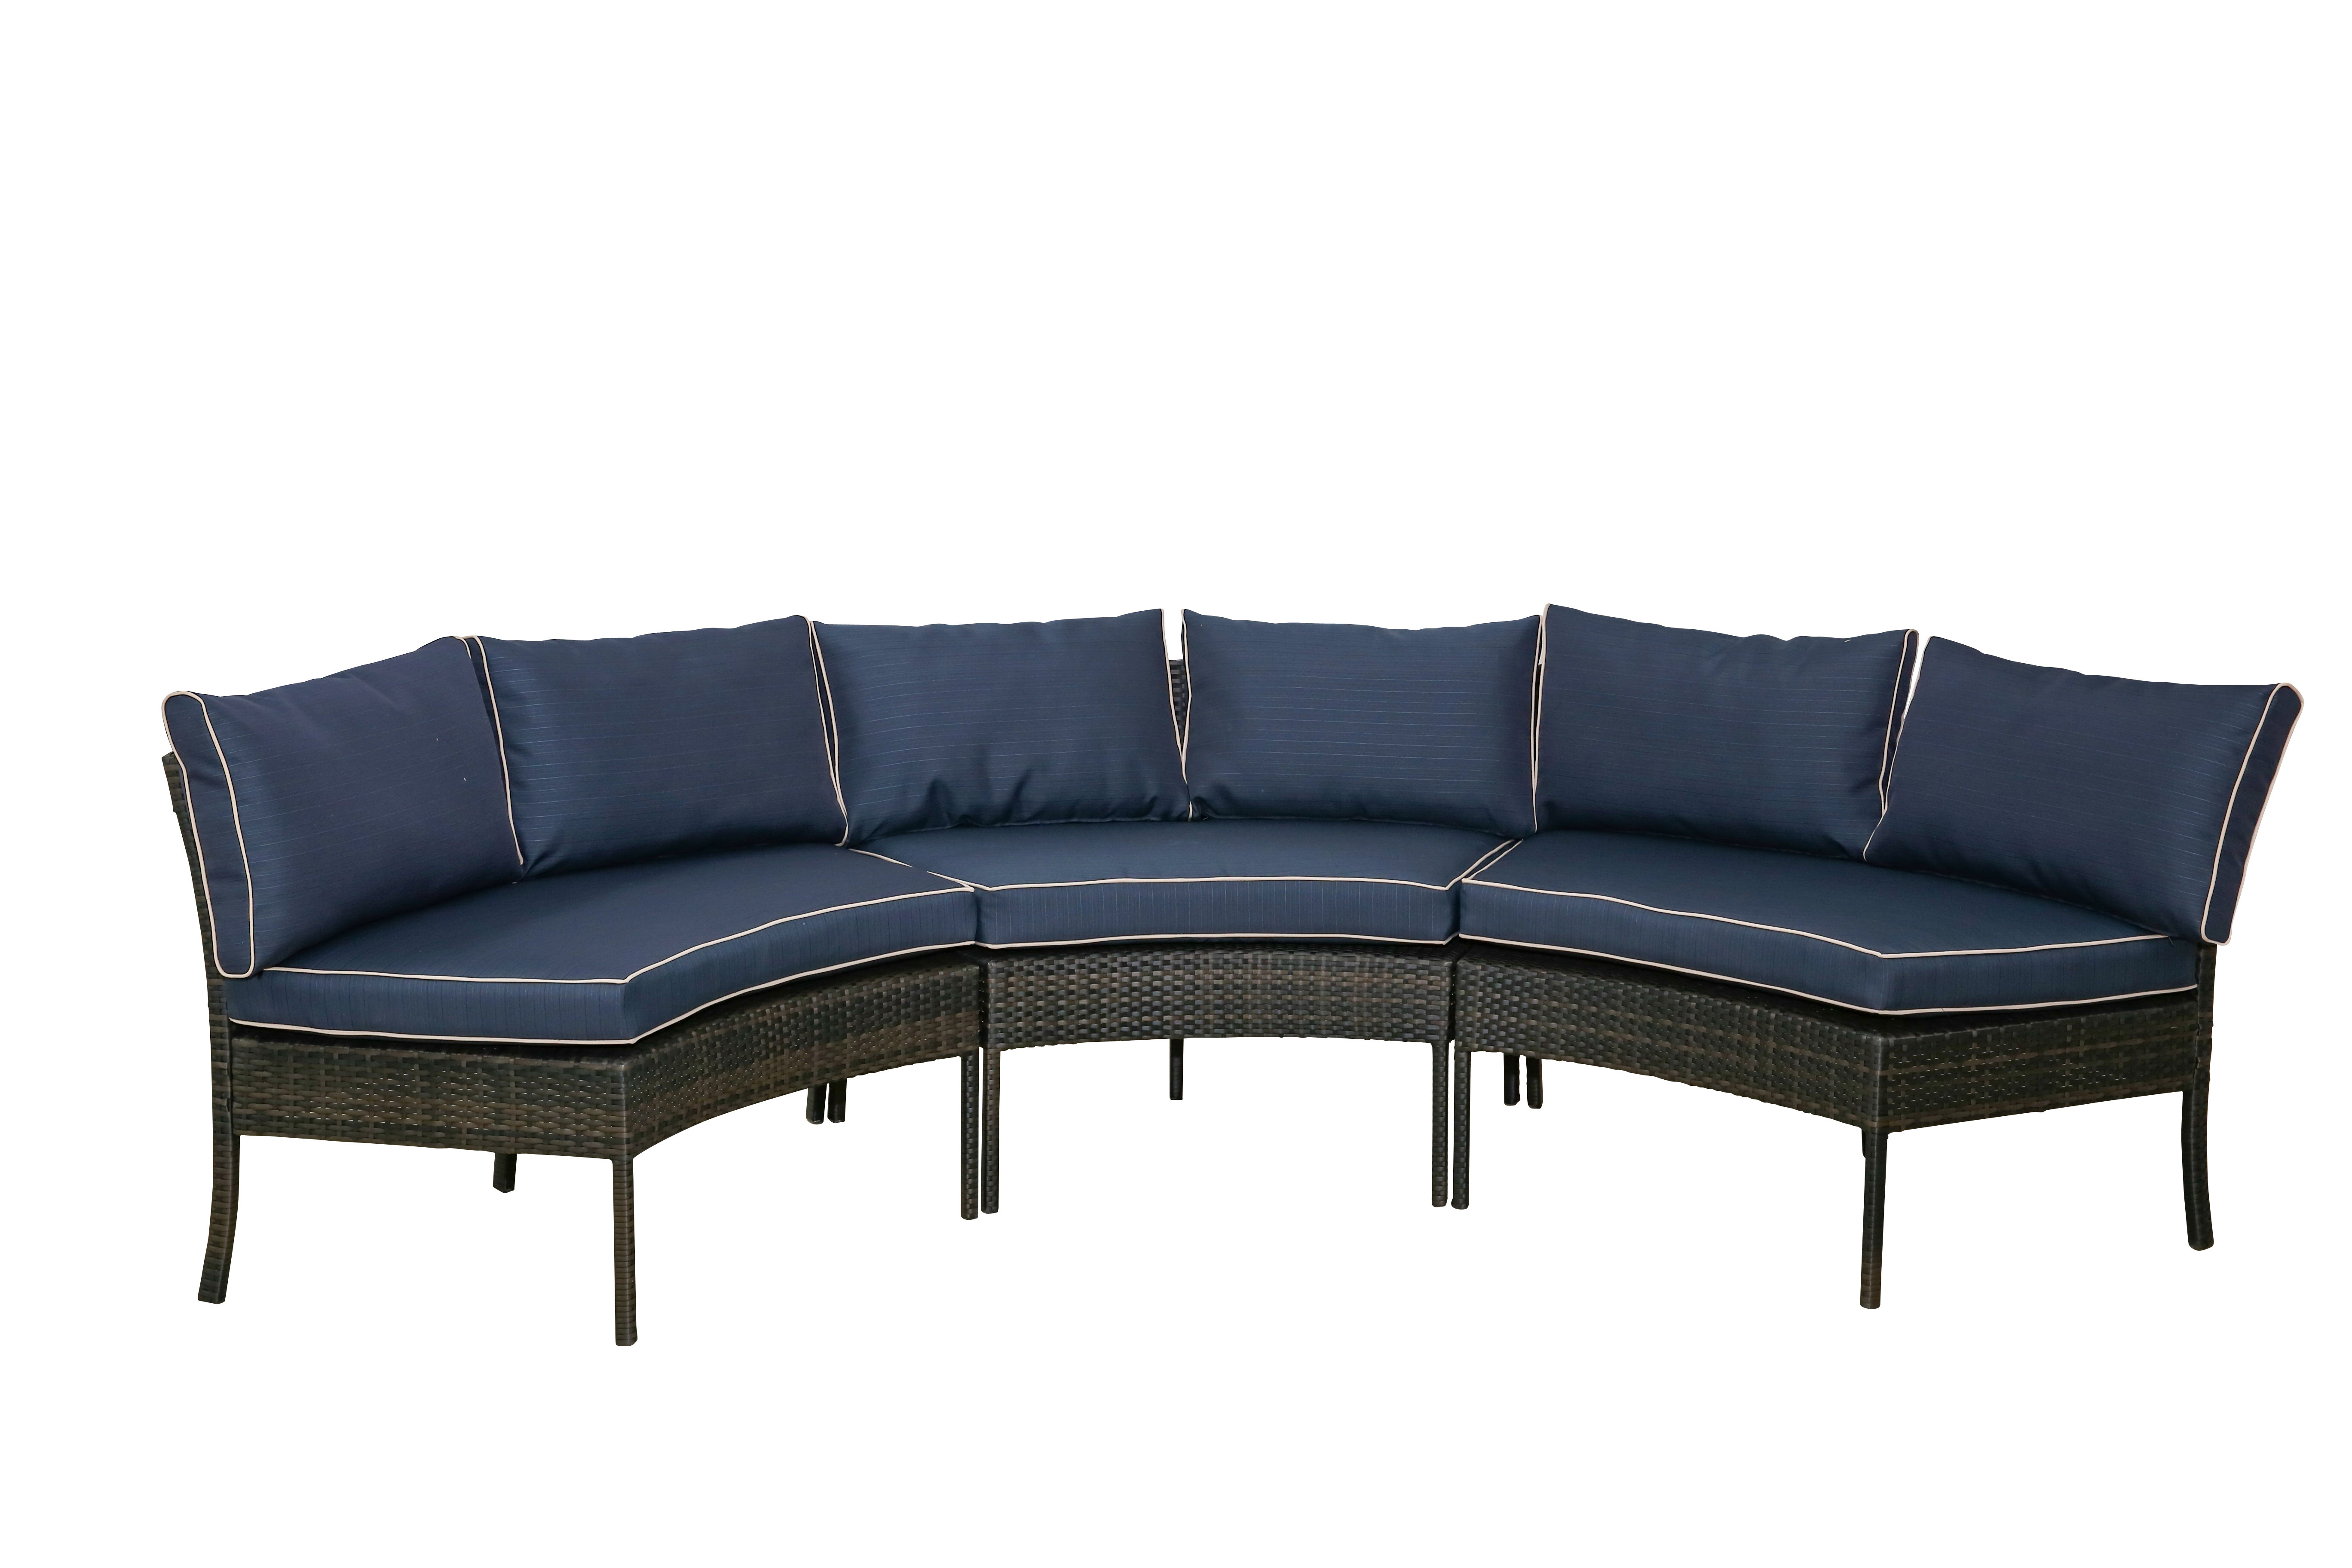 2020 Purington Circular Patio Sectional With Cushions For Purington Circular Patio Sectionals With Cushions (Gallery 3 of 20)